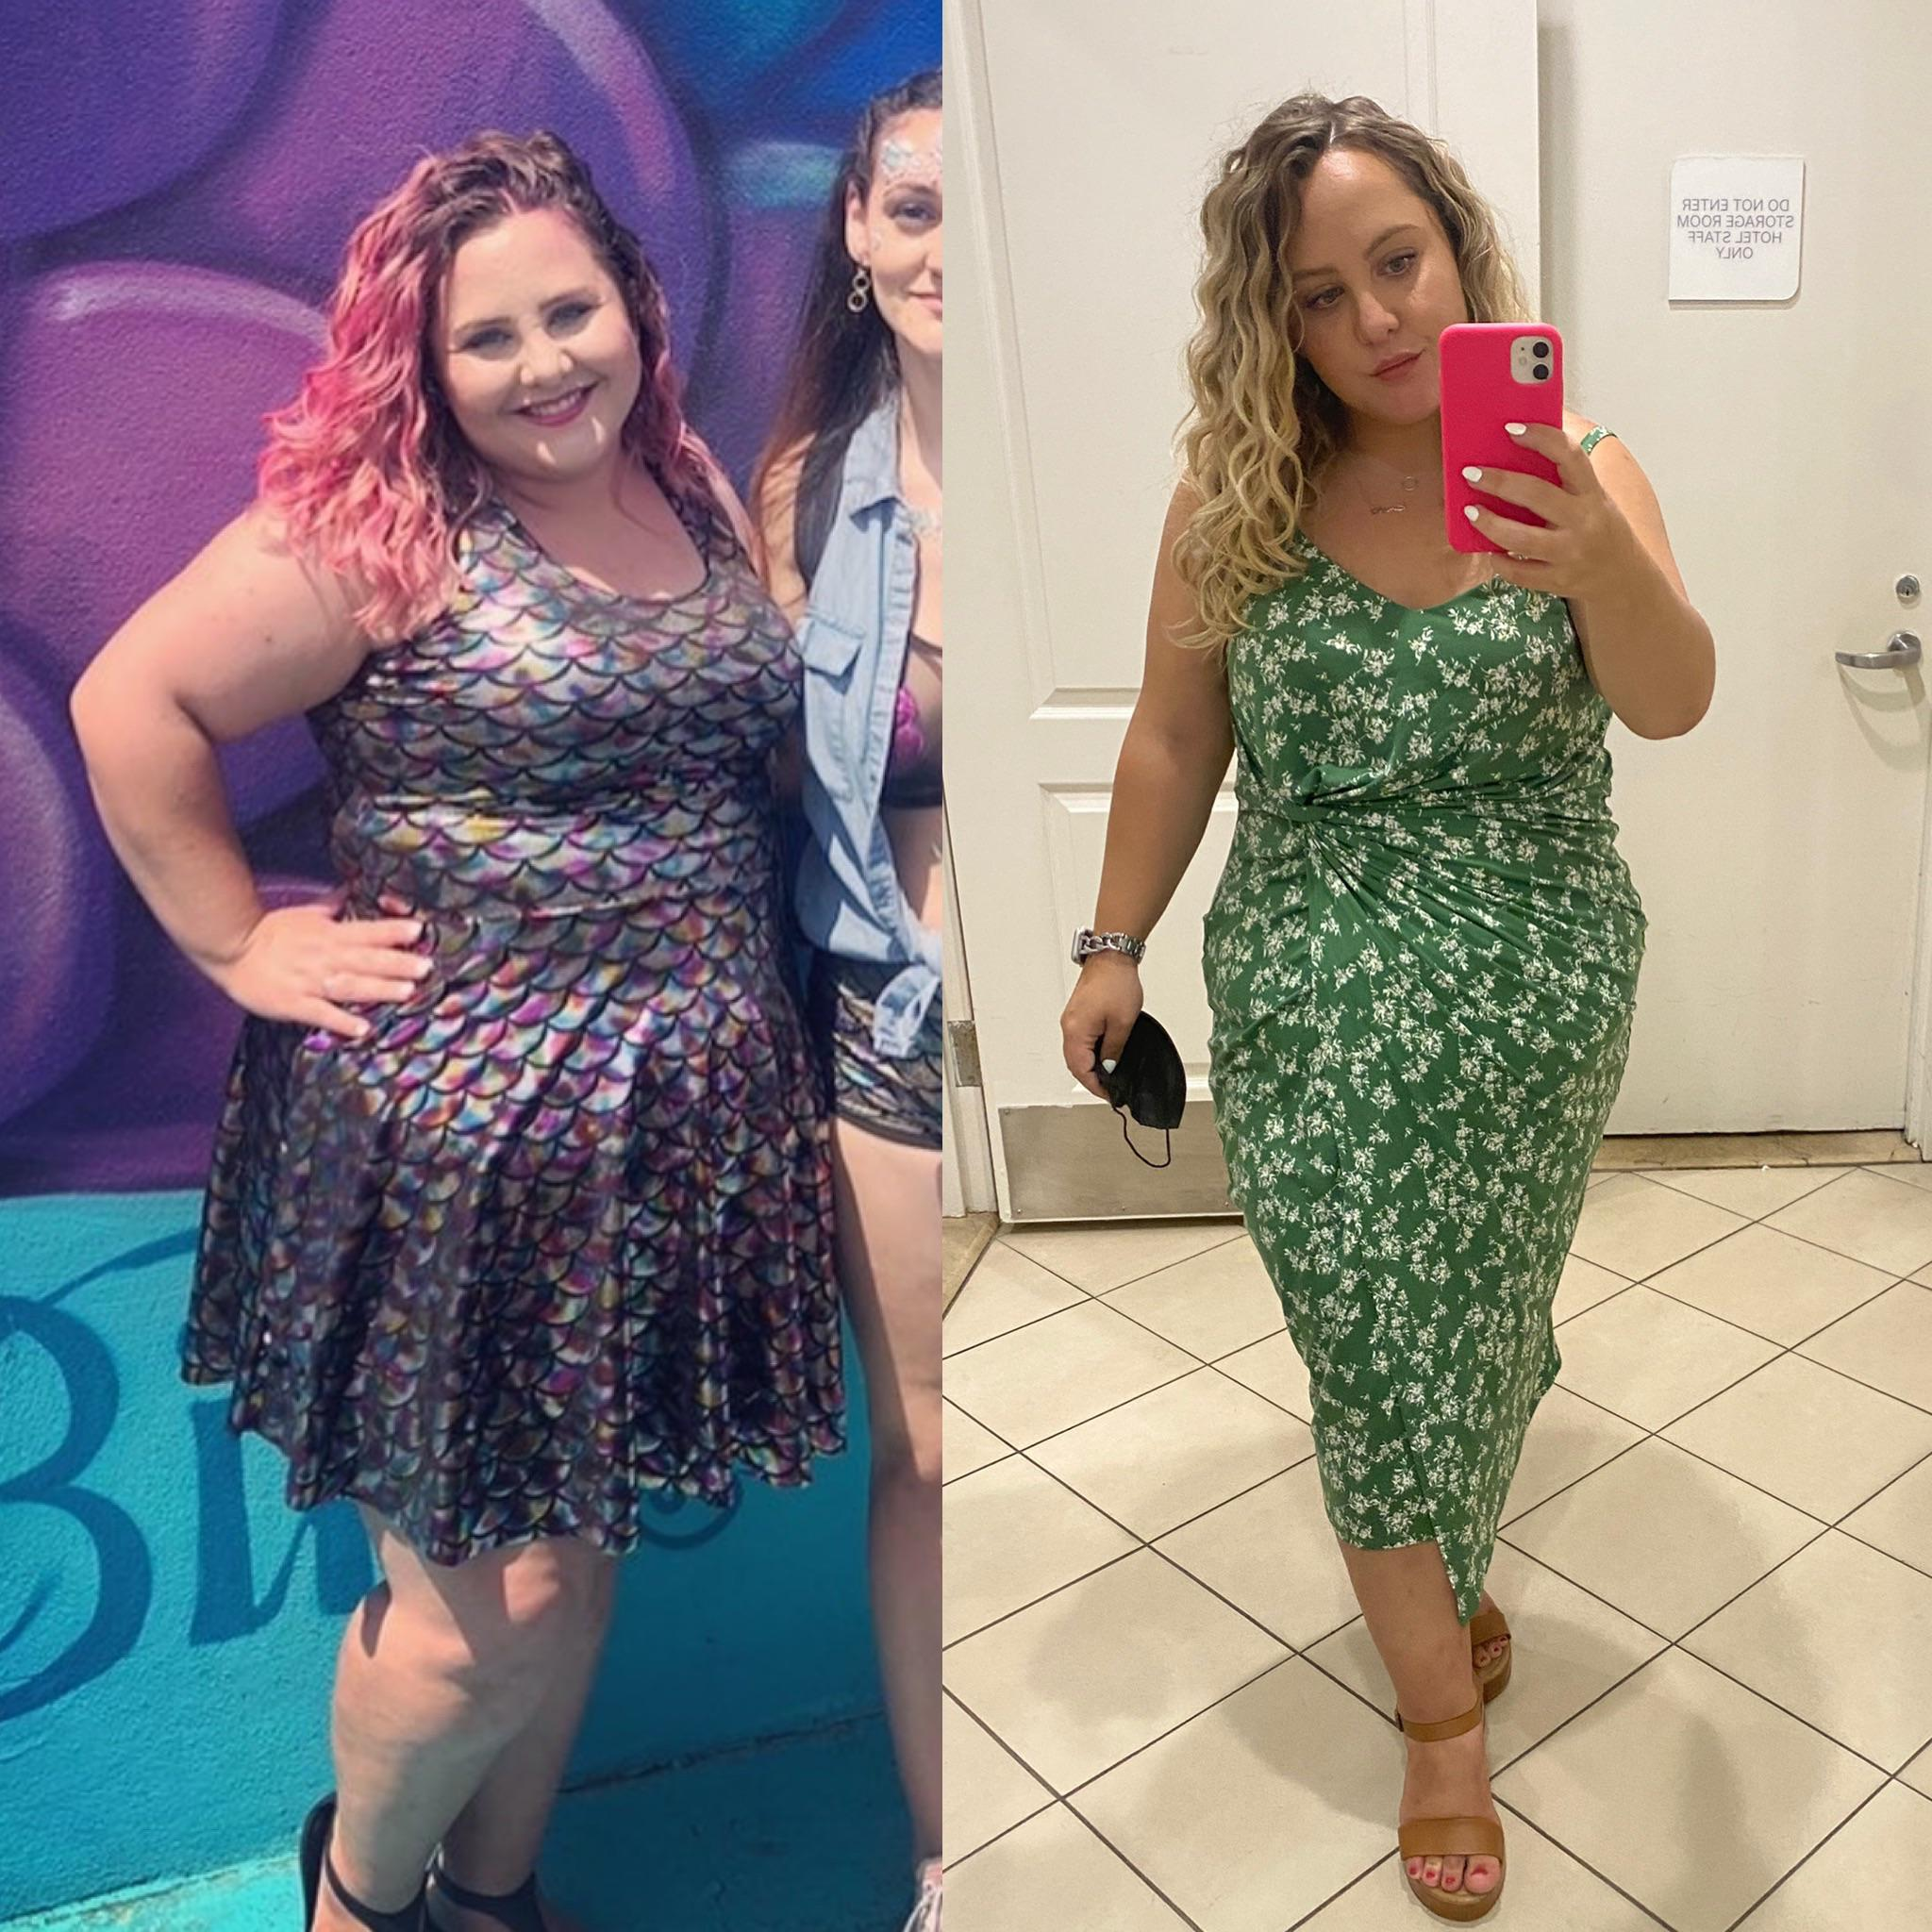 5 foot 2 Female 47 lbs Weight Loss 243 lbs to 196 lbs